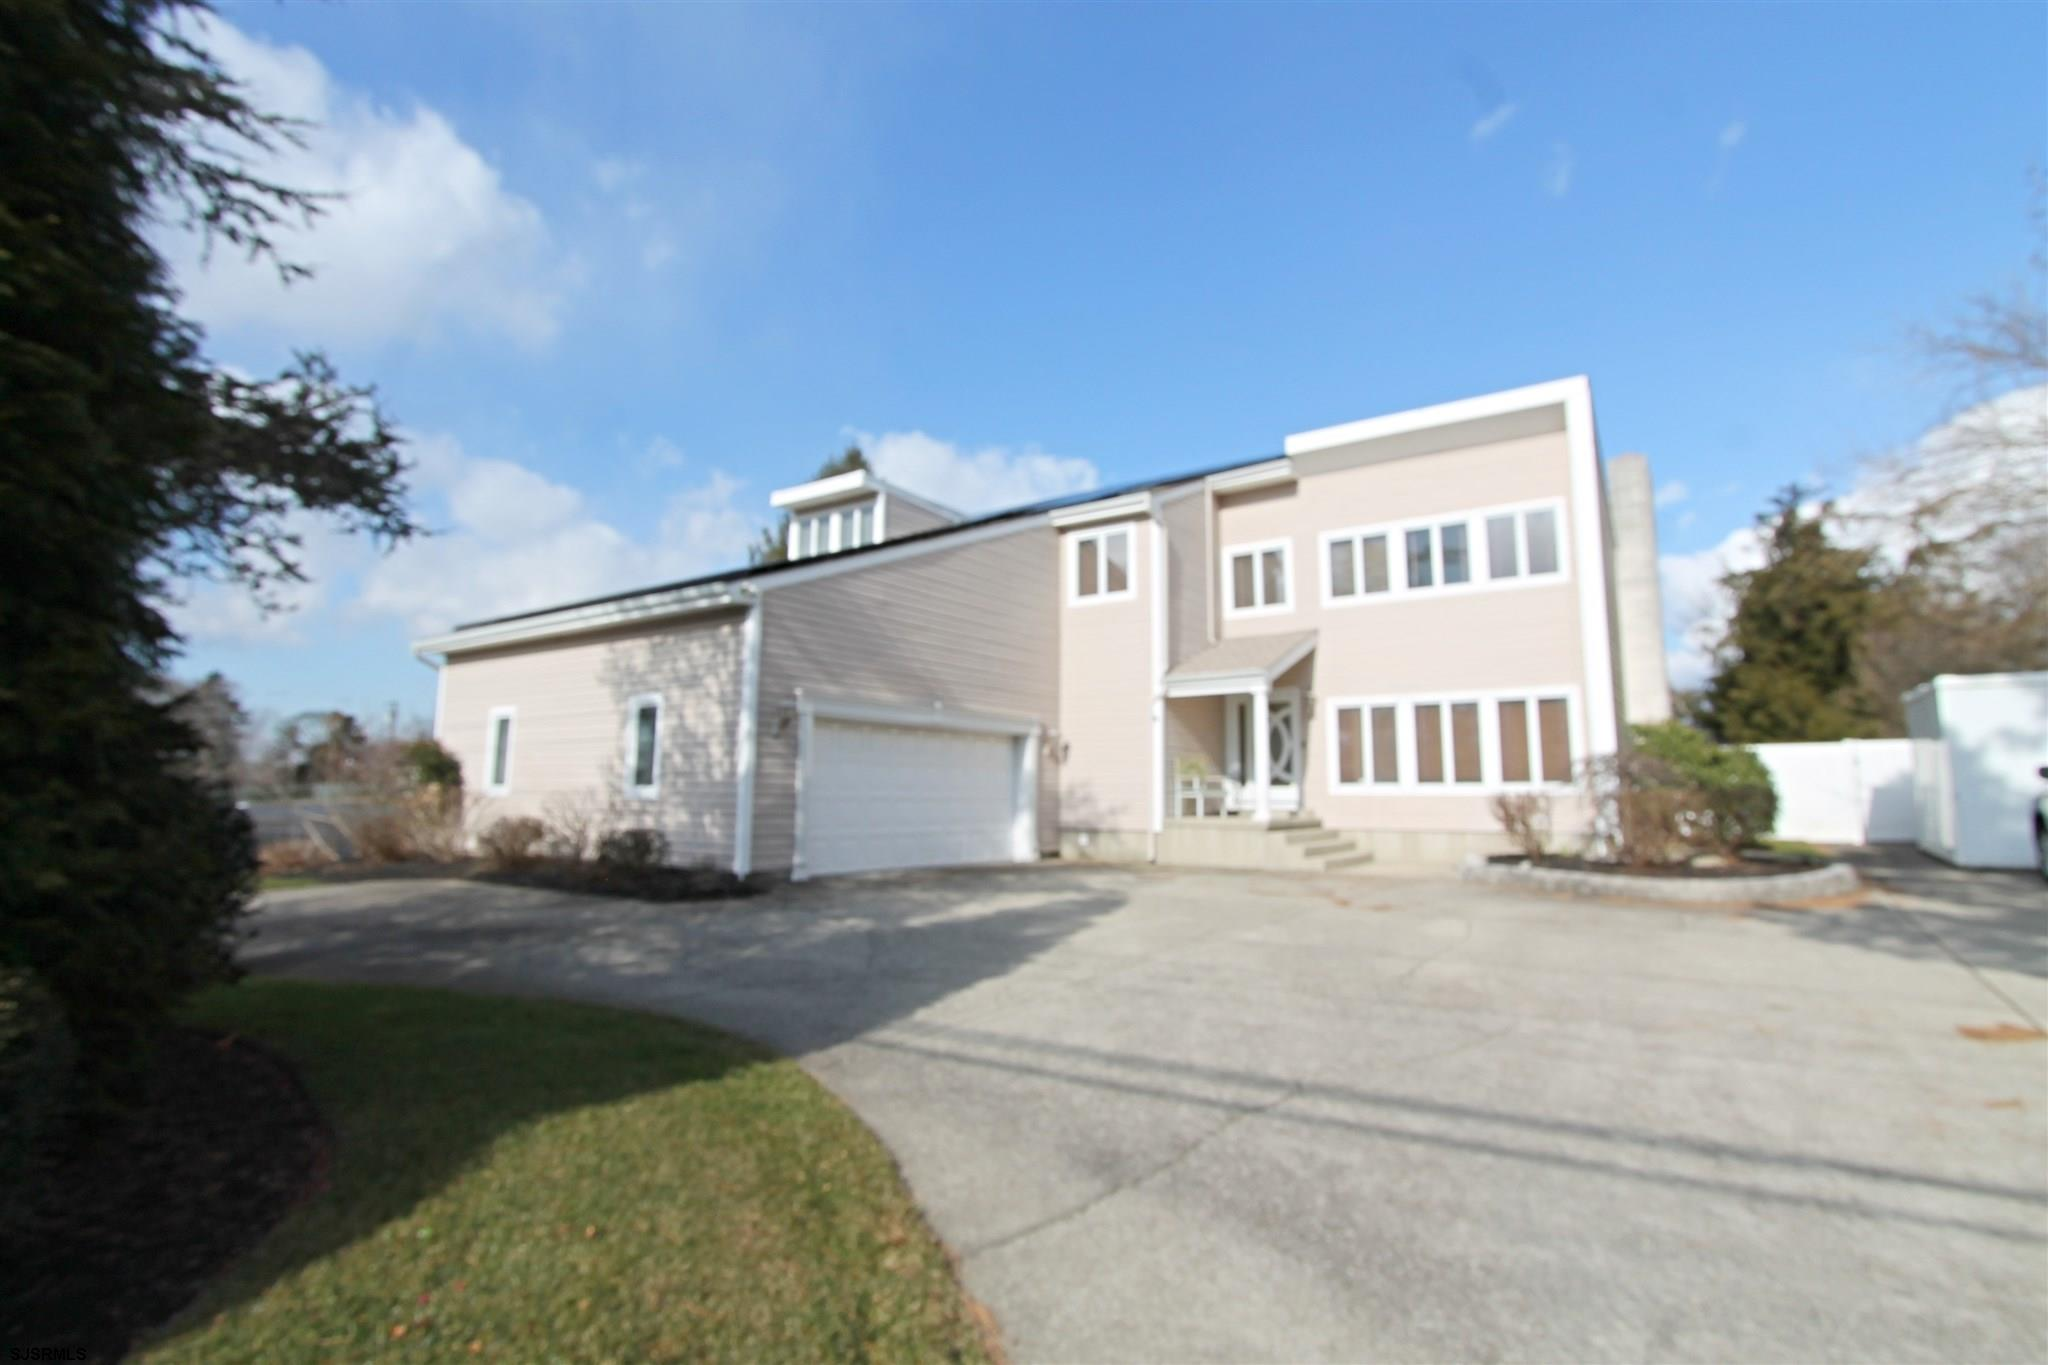 Plenty of off street parking with the Circular drive and 2 car garage! Large family room open to the